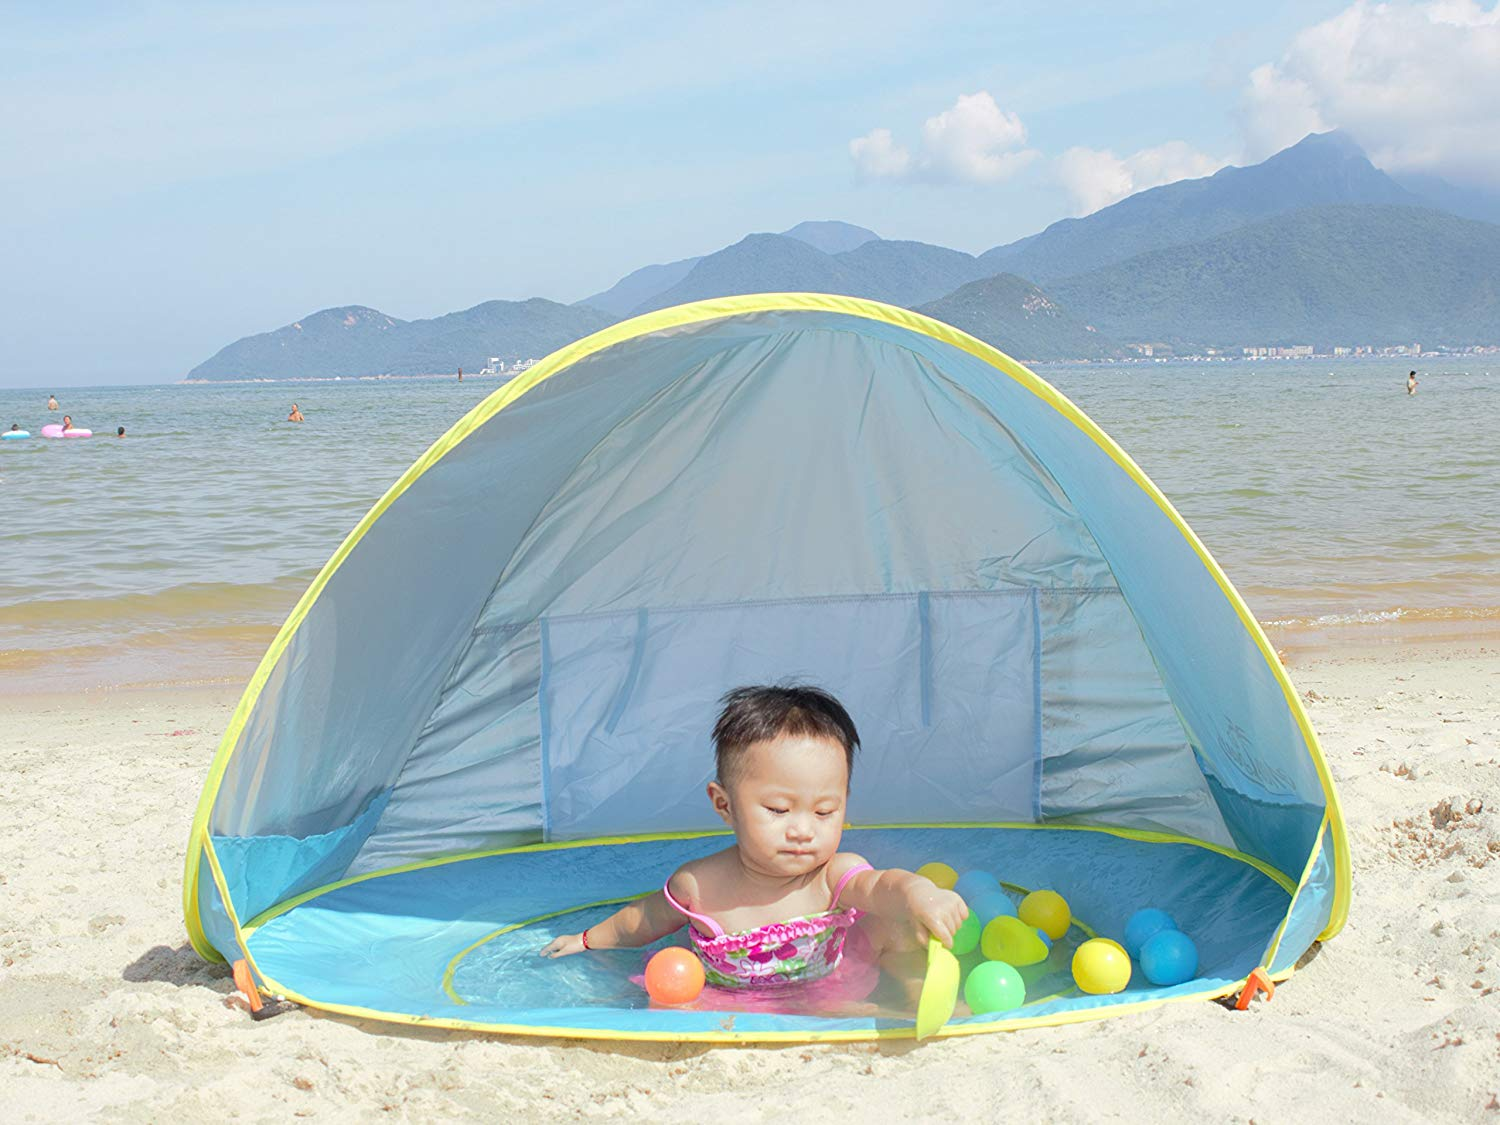 10 Safest Baby Beach Tents for Holiday | Reviewed 2019